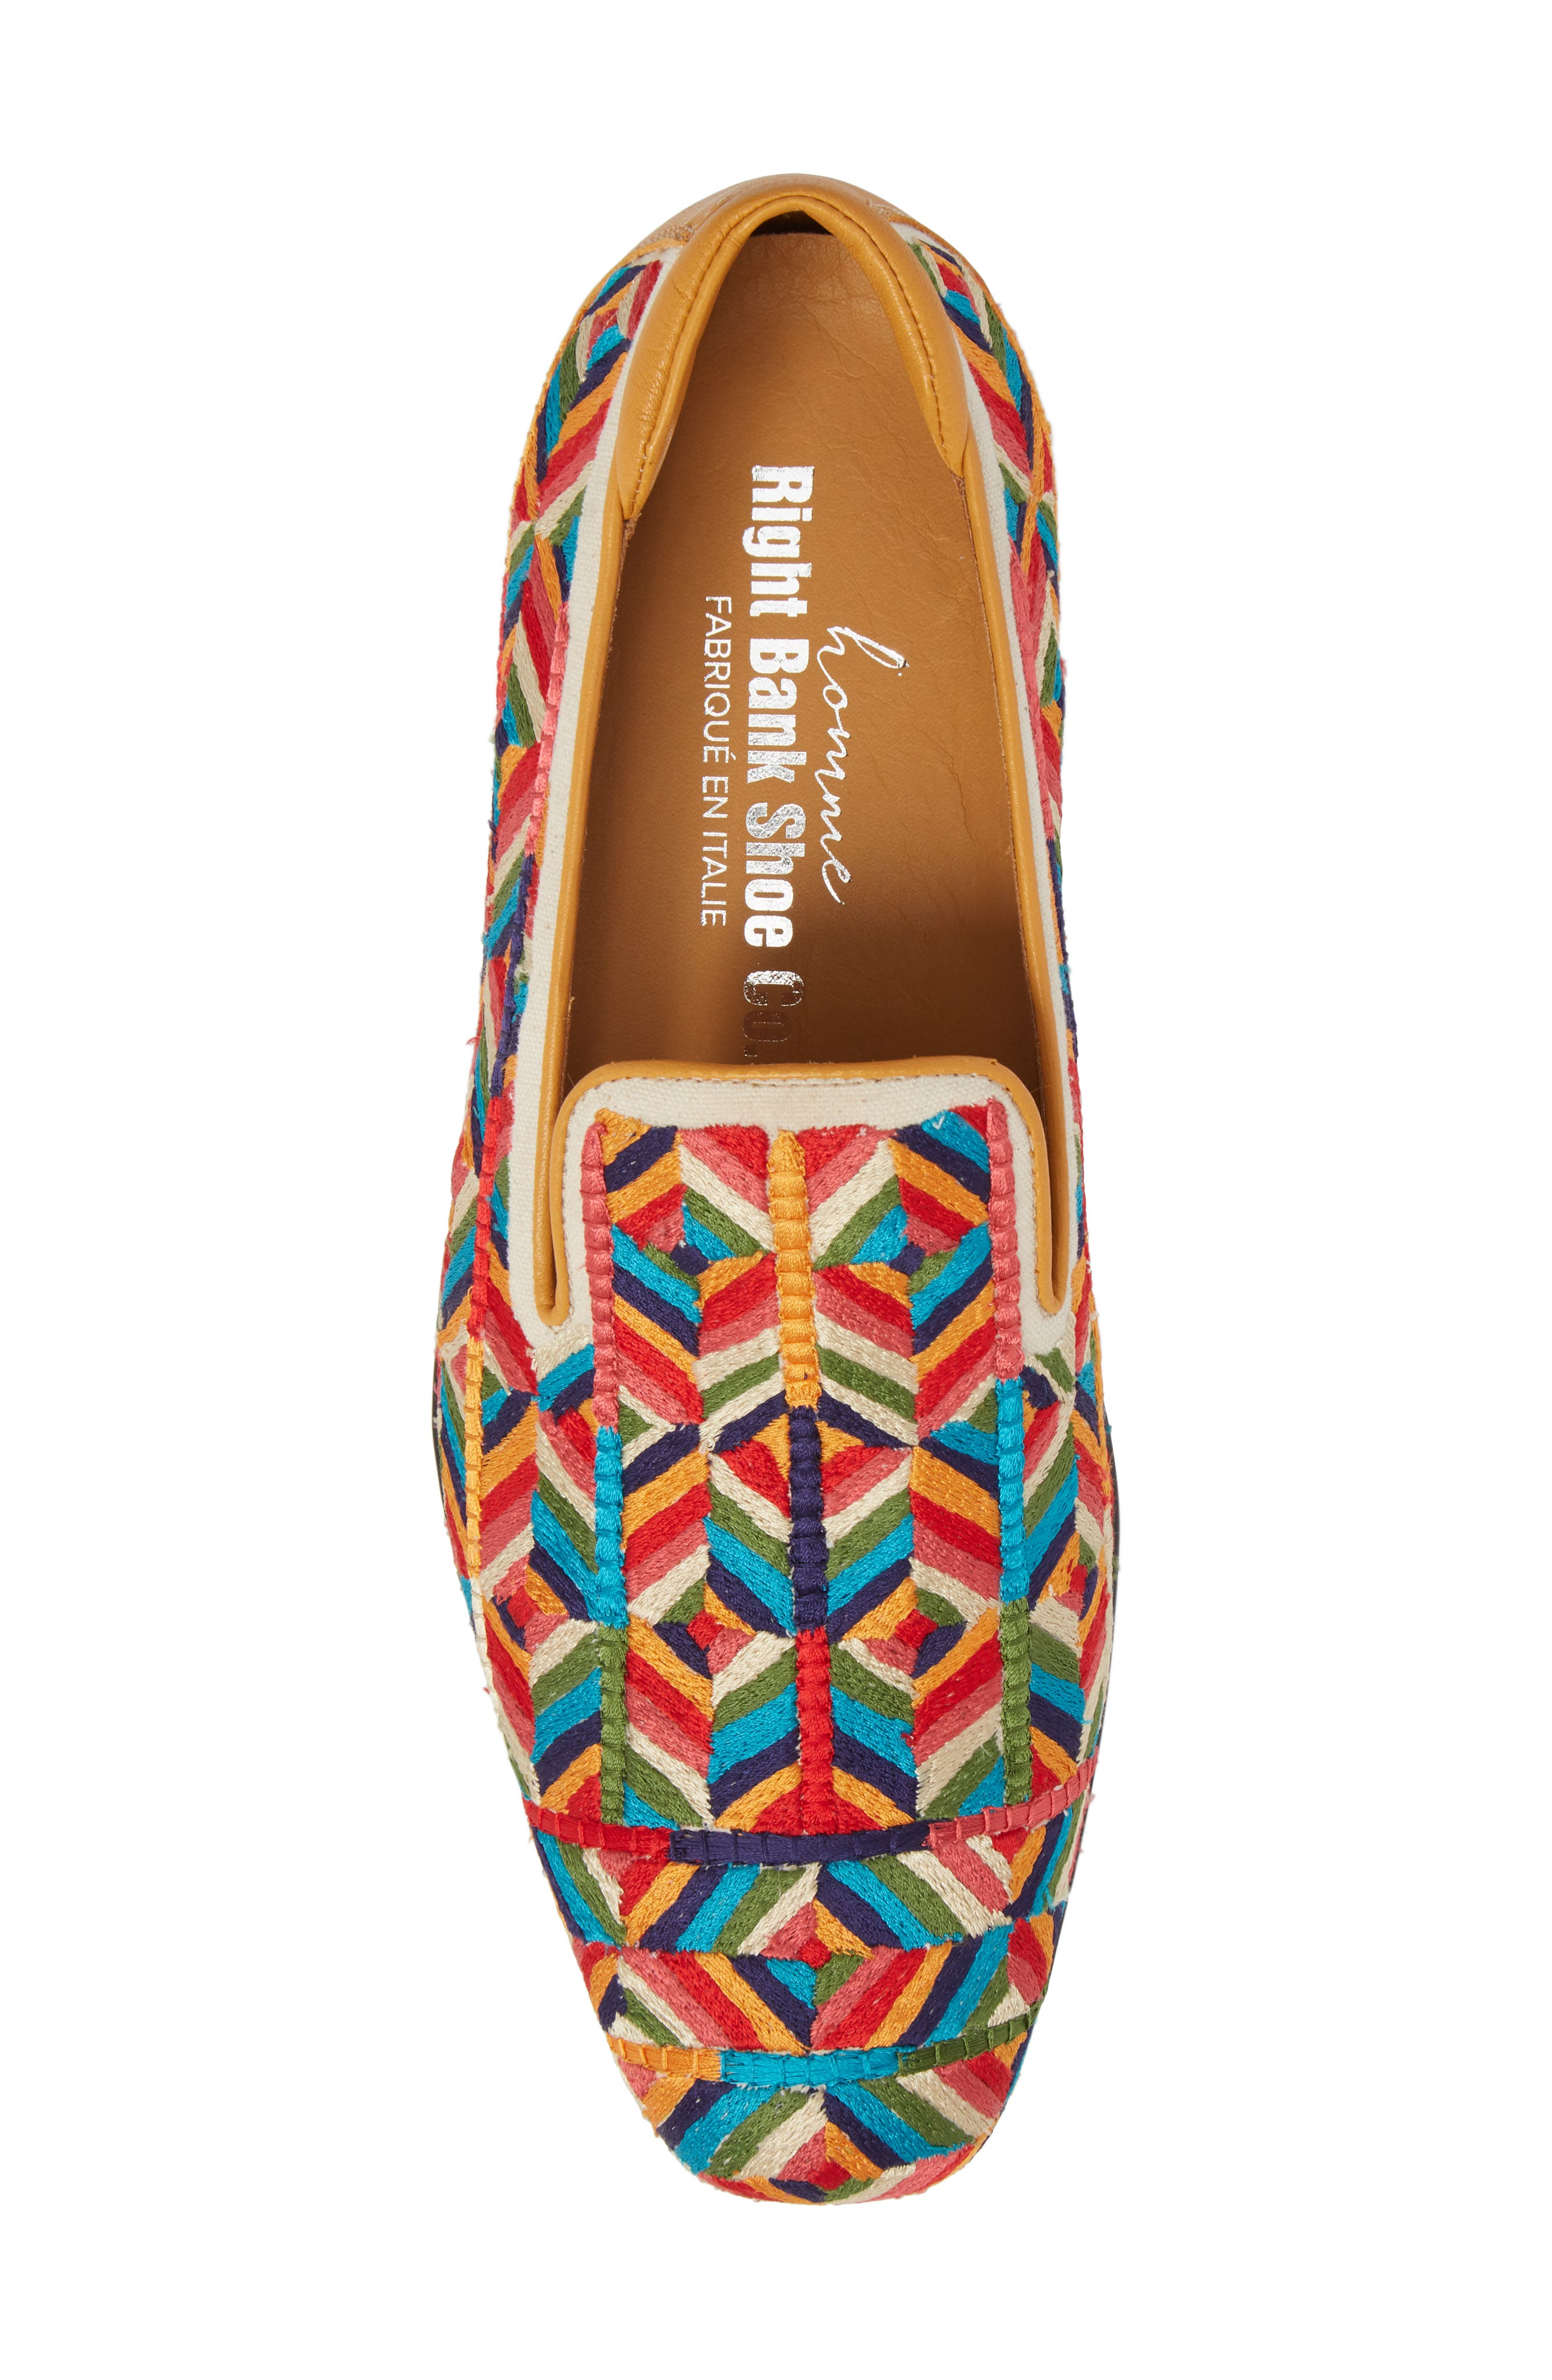 Verge Venetian Loafer,                             Alternate thumbnail 5, color,                             Yellow Fabric